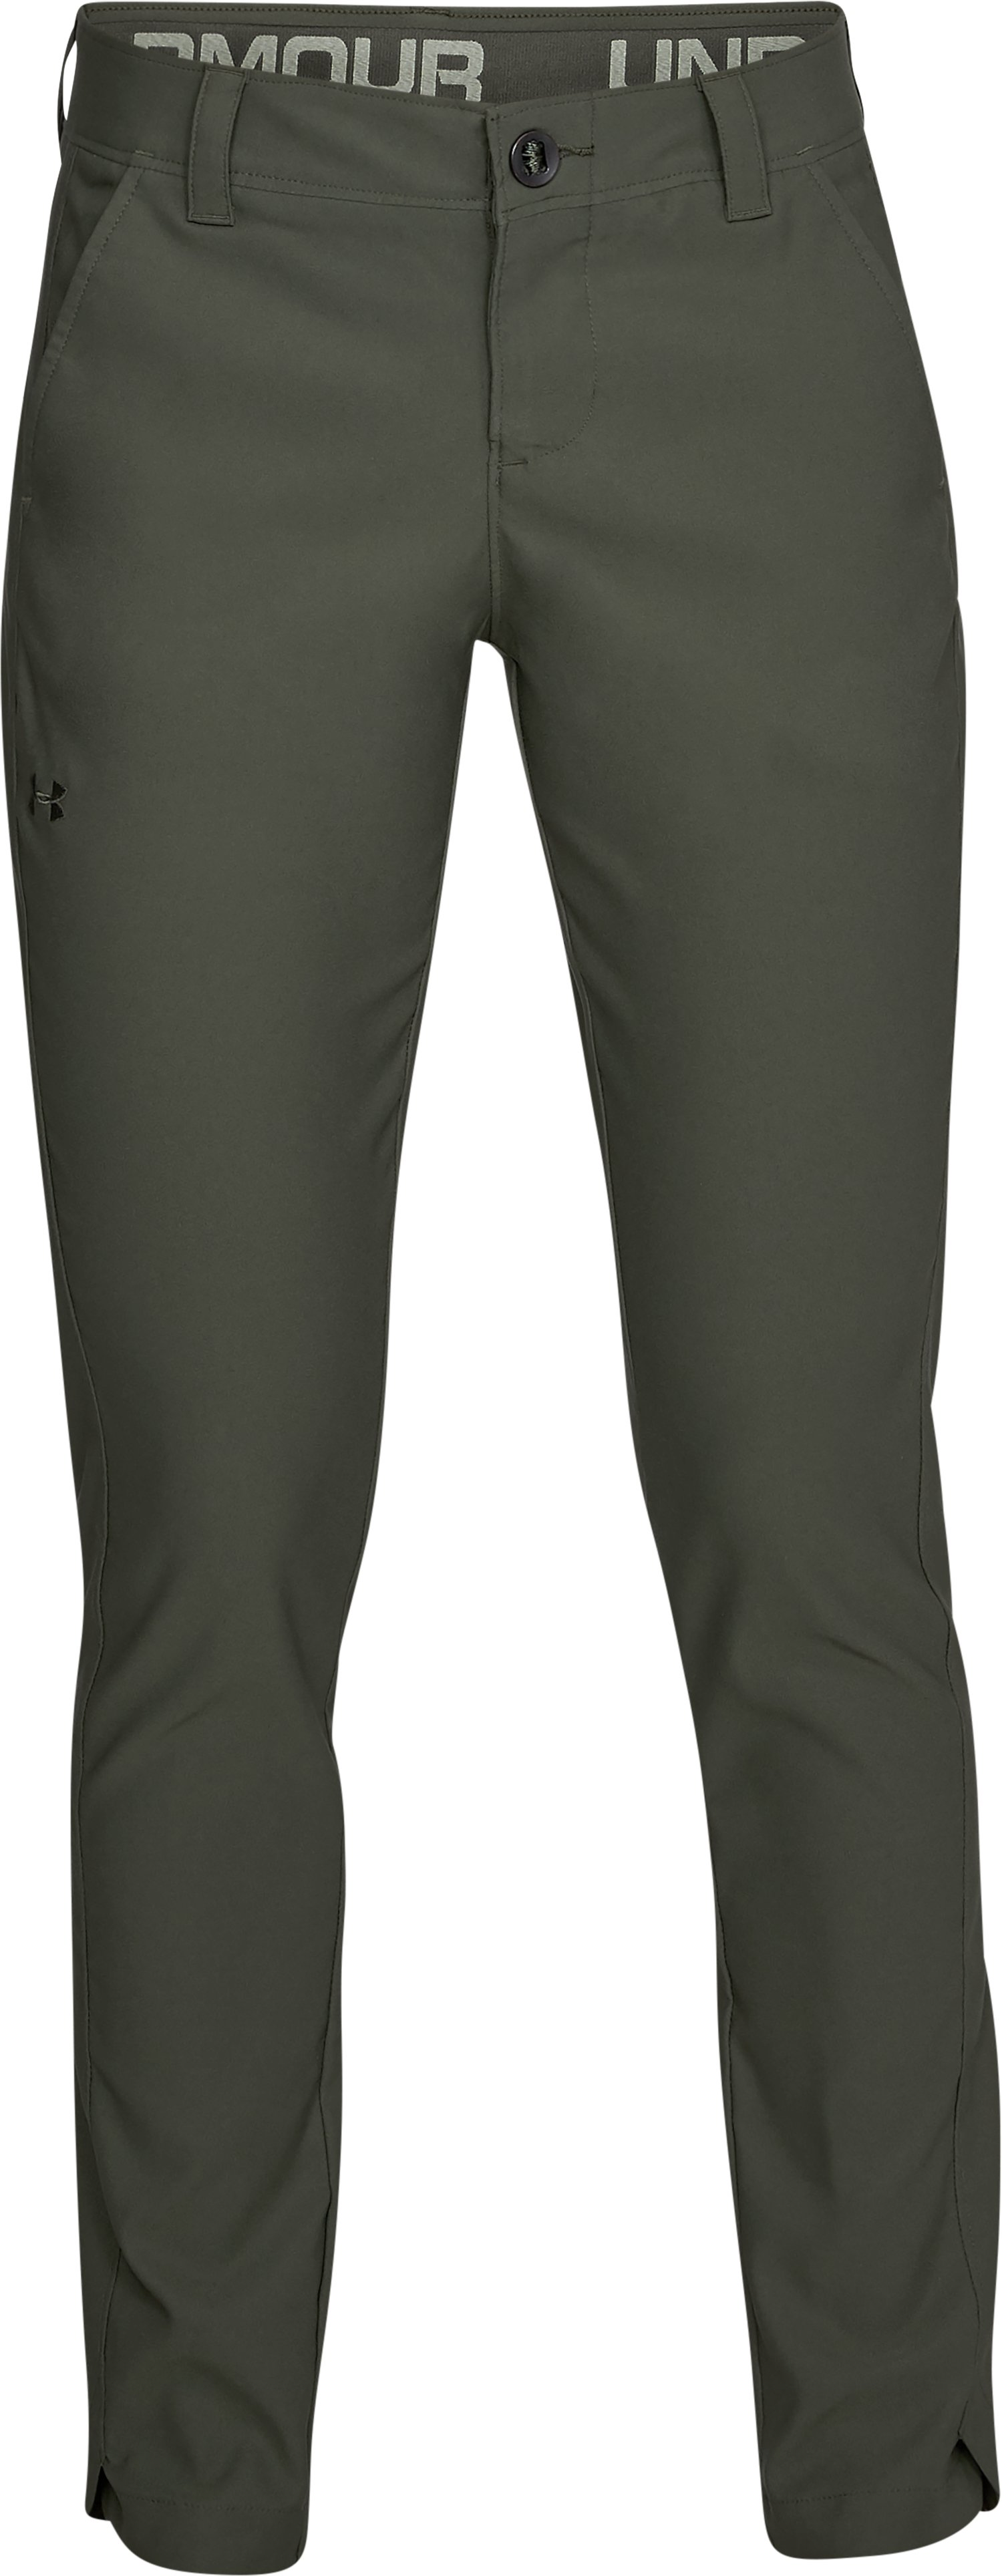 Women's UA Inlet Fishing Pants, DOWNTOWN GREEN,